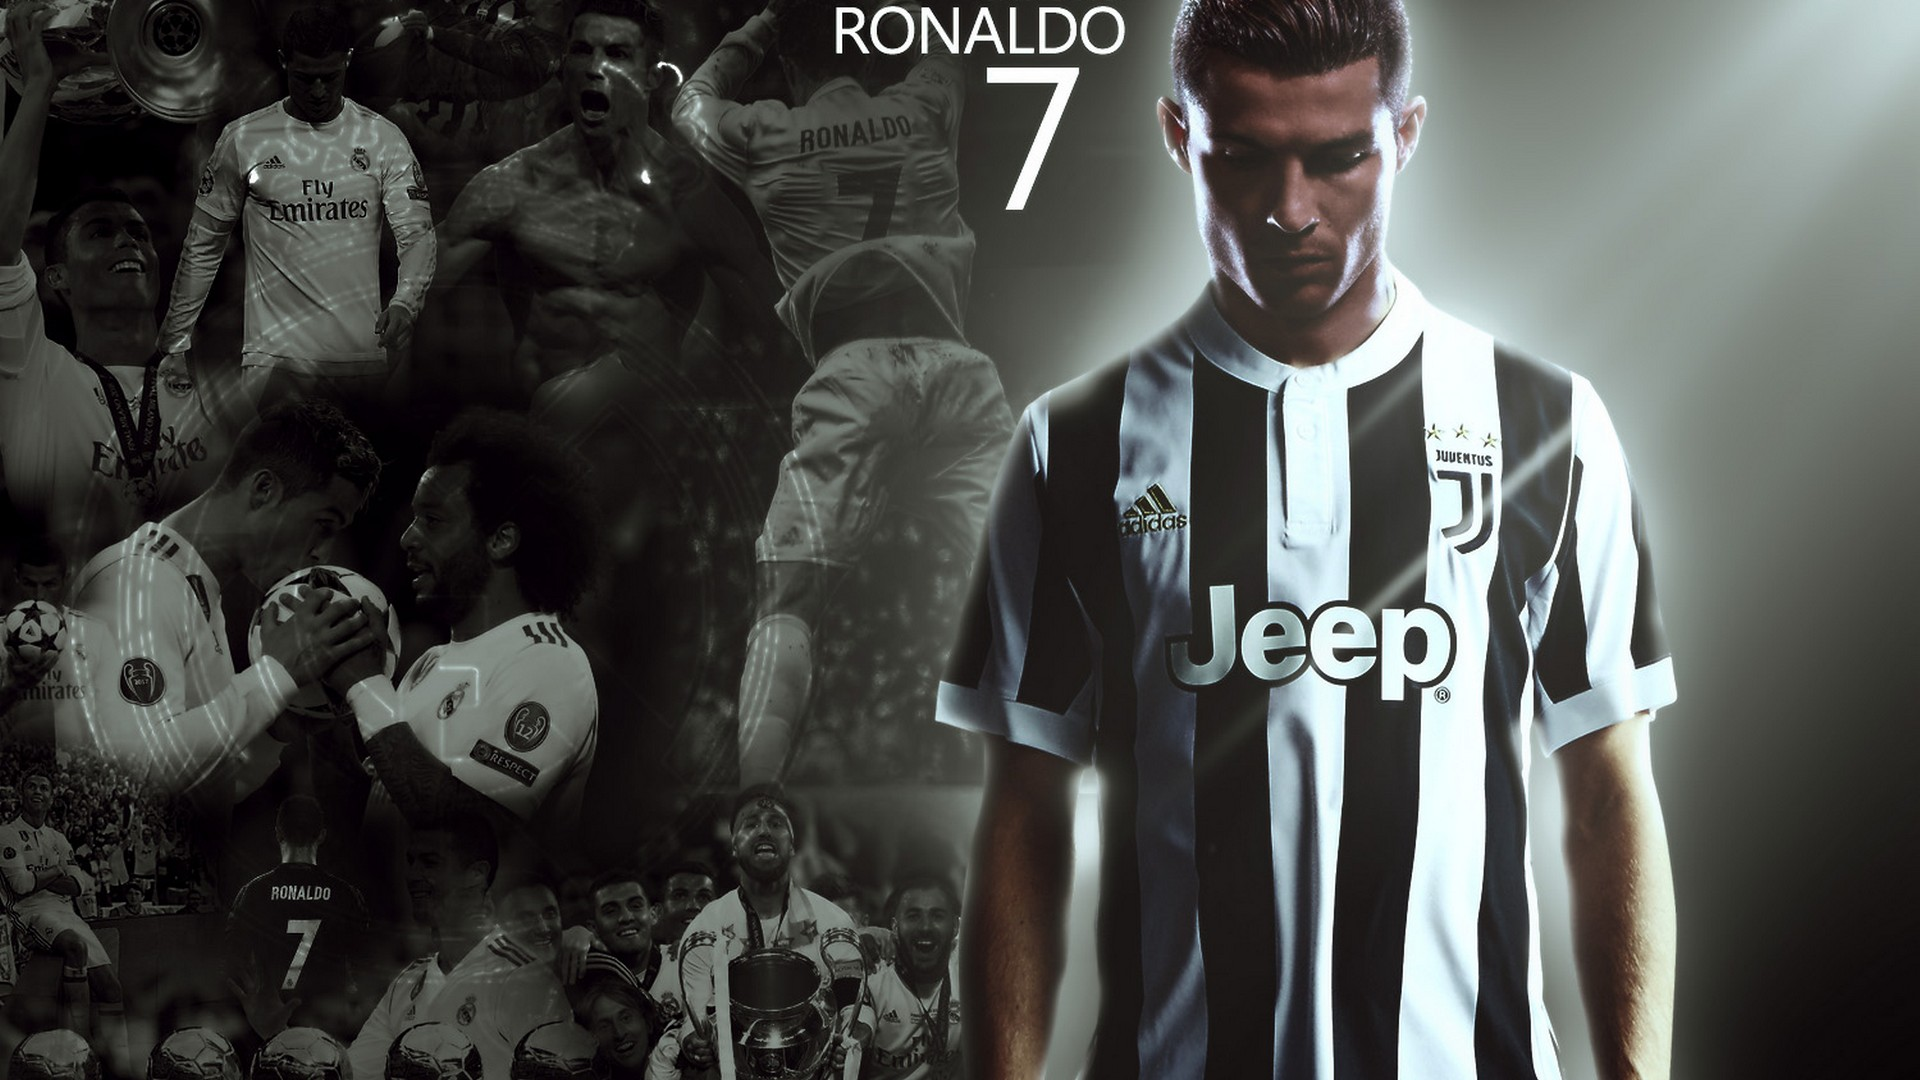 Free Download Desktop Wallpaper C Ronaldo Juventus 2021 Cute Wallpapers 1920x1080 For Your Desktop Mobile Tablet Explore 44 Cristiano Ronaldo Juventus 2021 Wallpapers Cristiano Ronaldo Juventus Wallpapers Cristiano Ronaldo Wallpapers